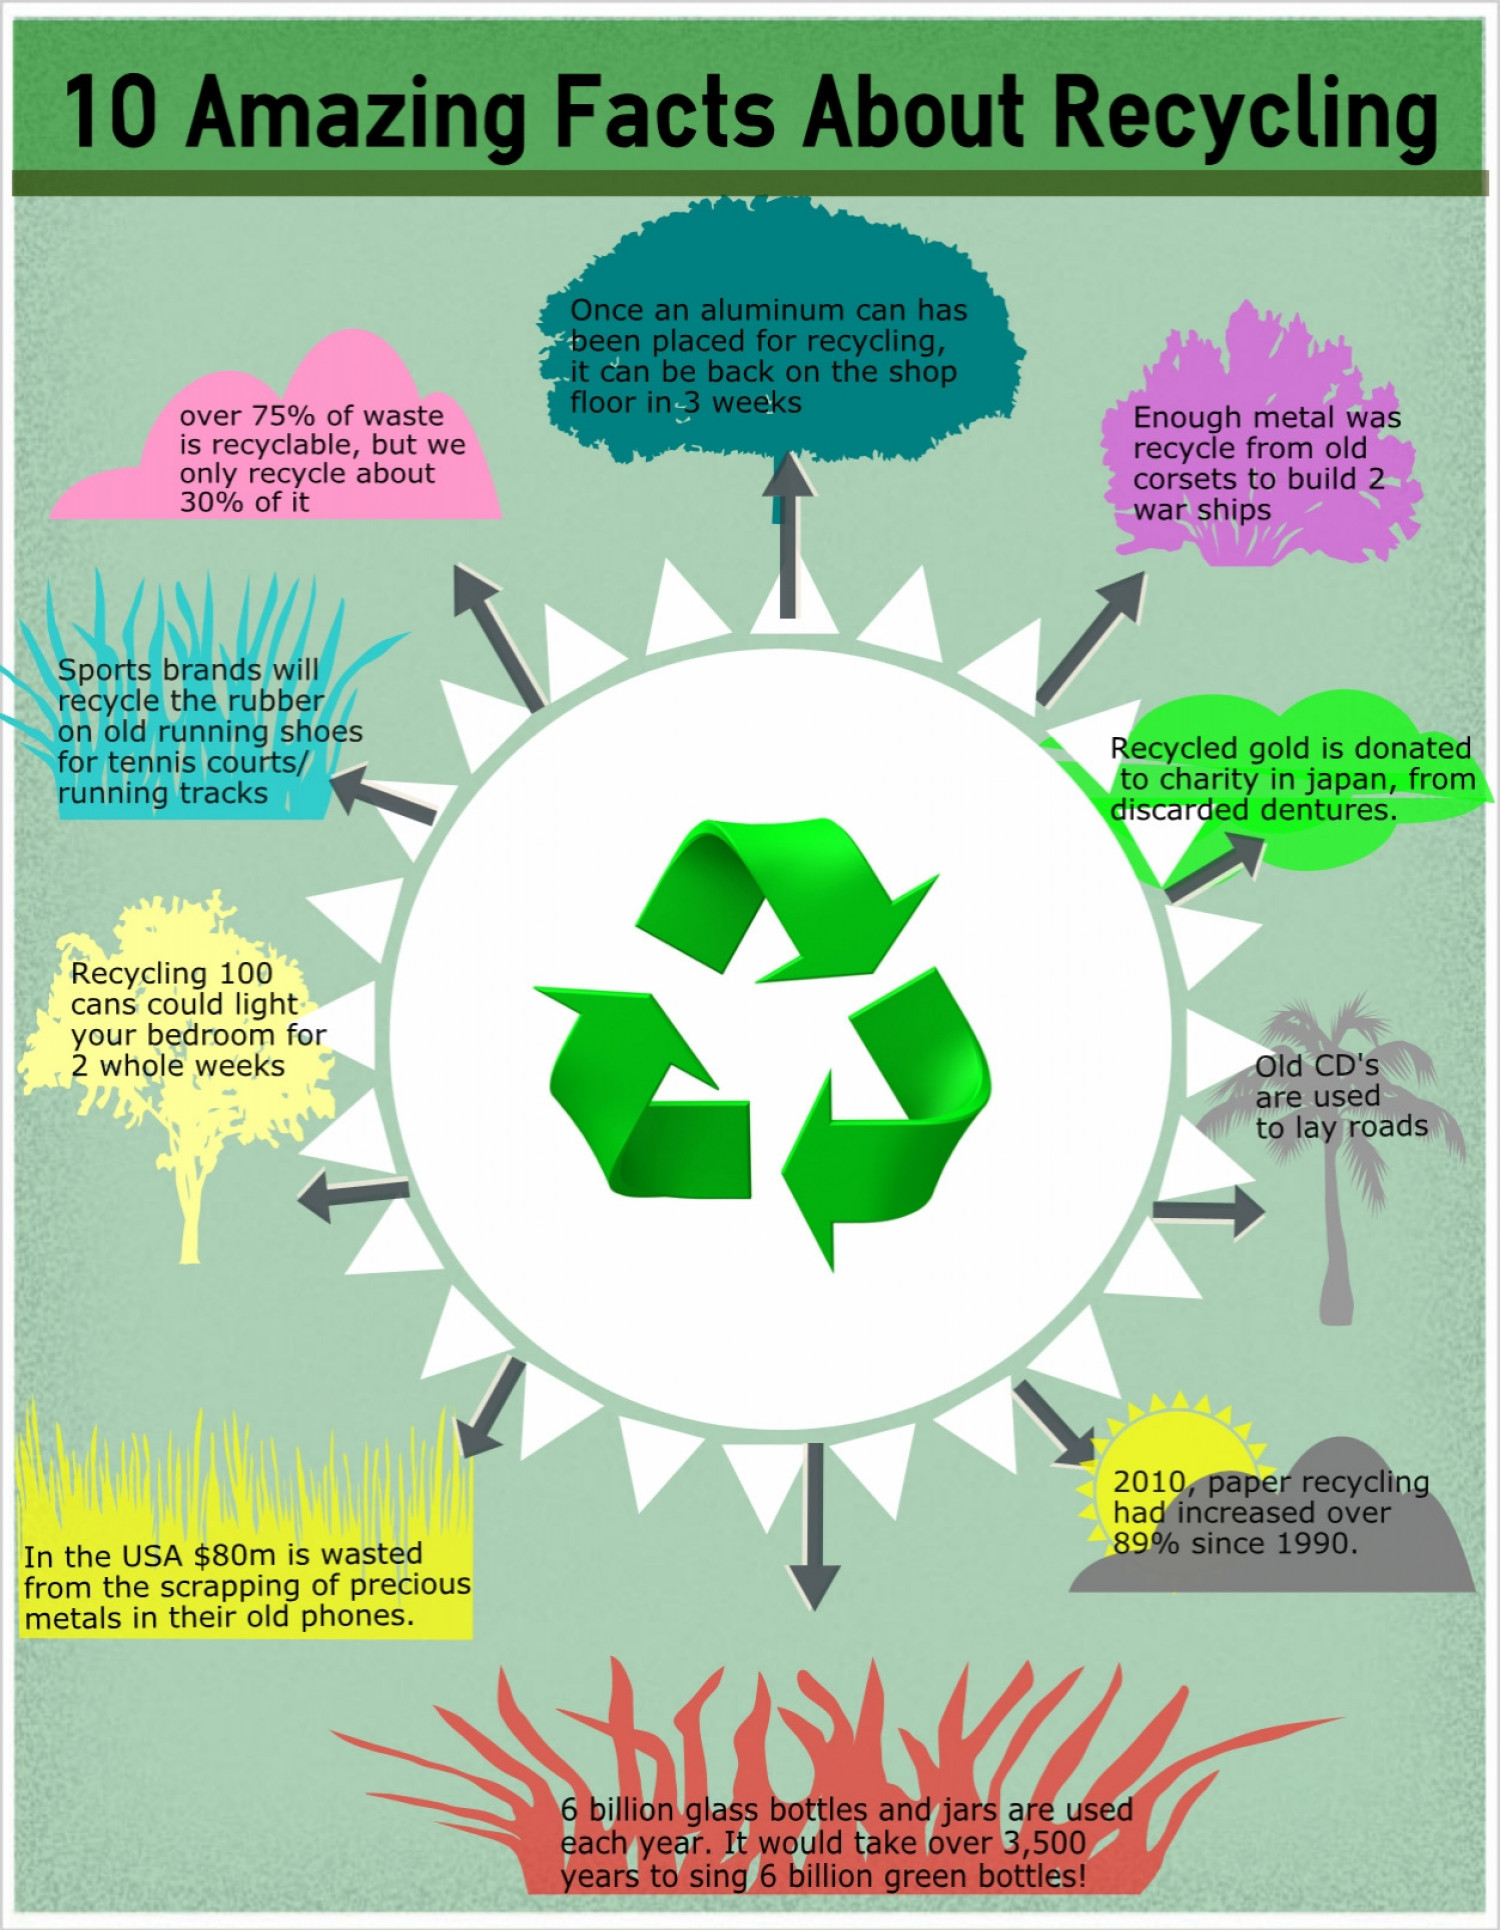 Recycling facts Infographic